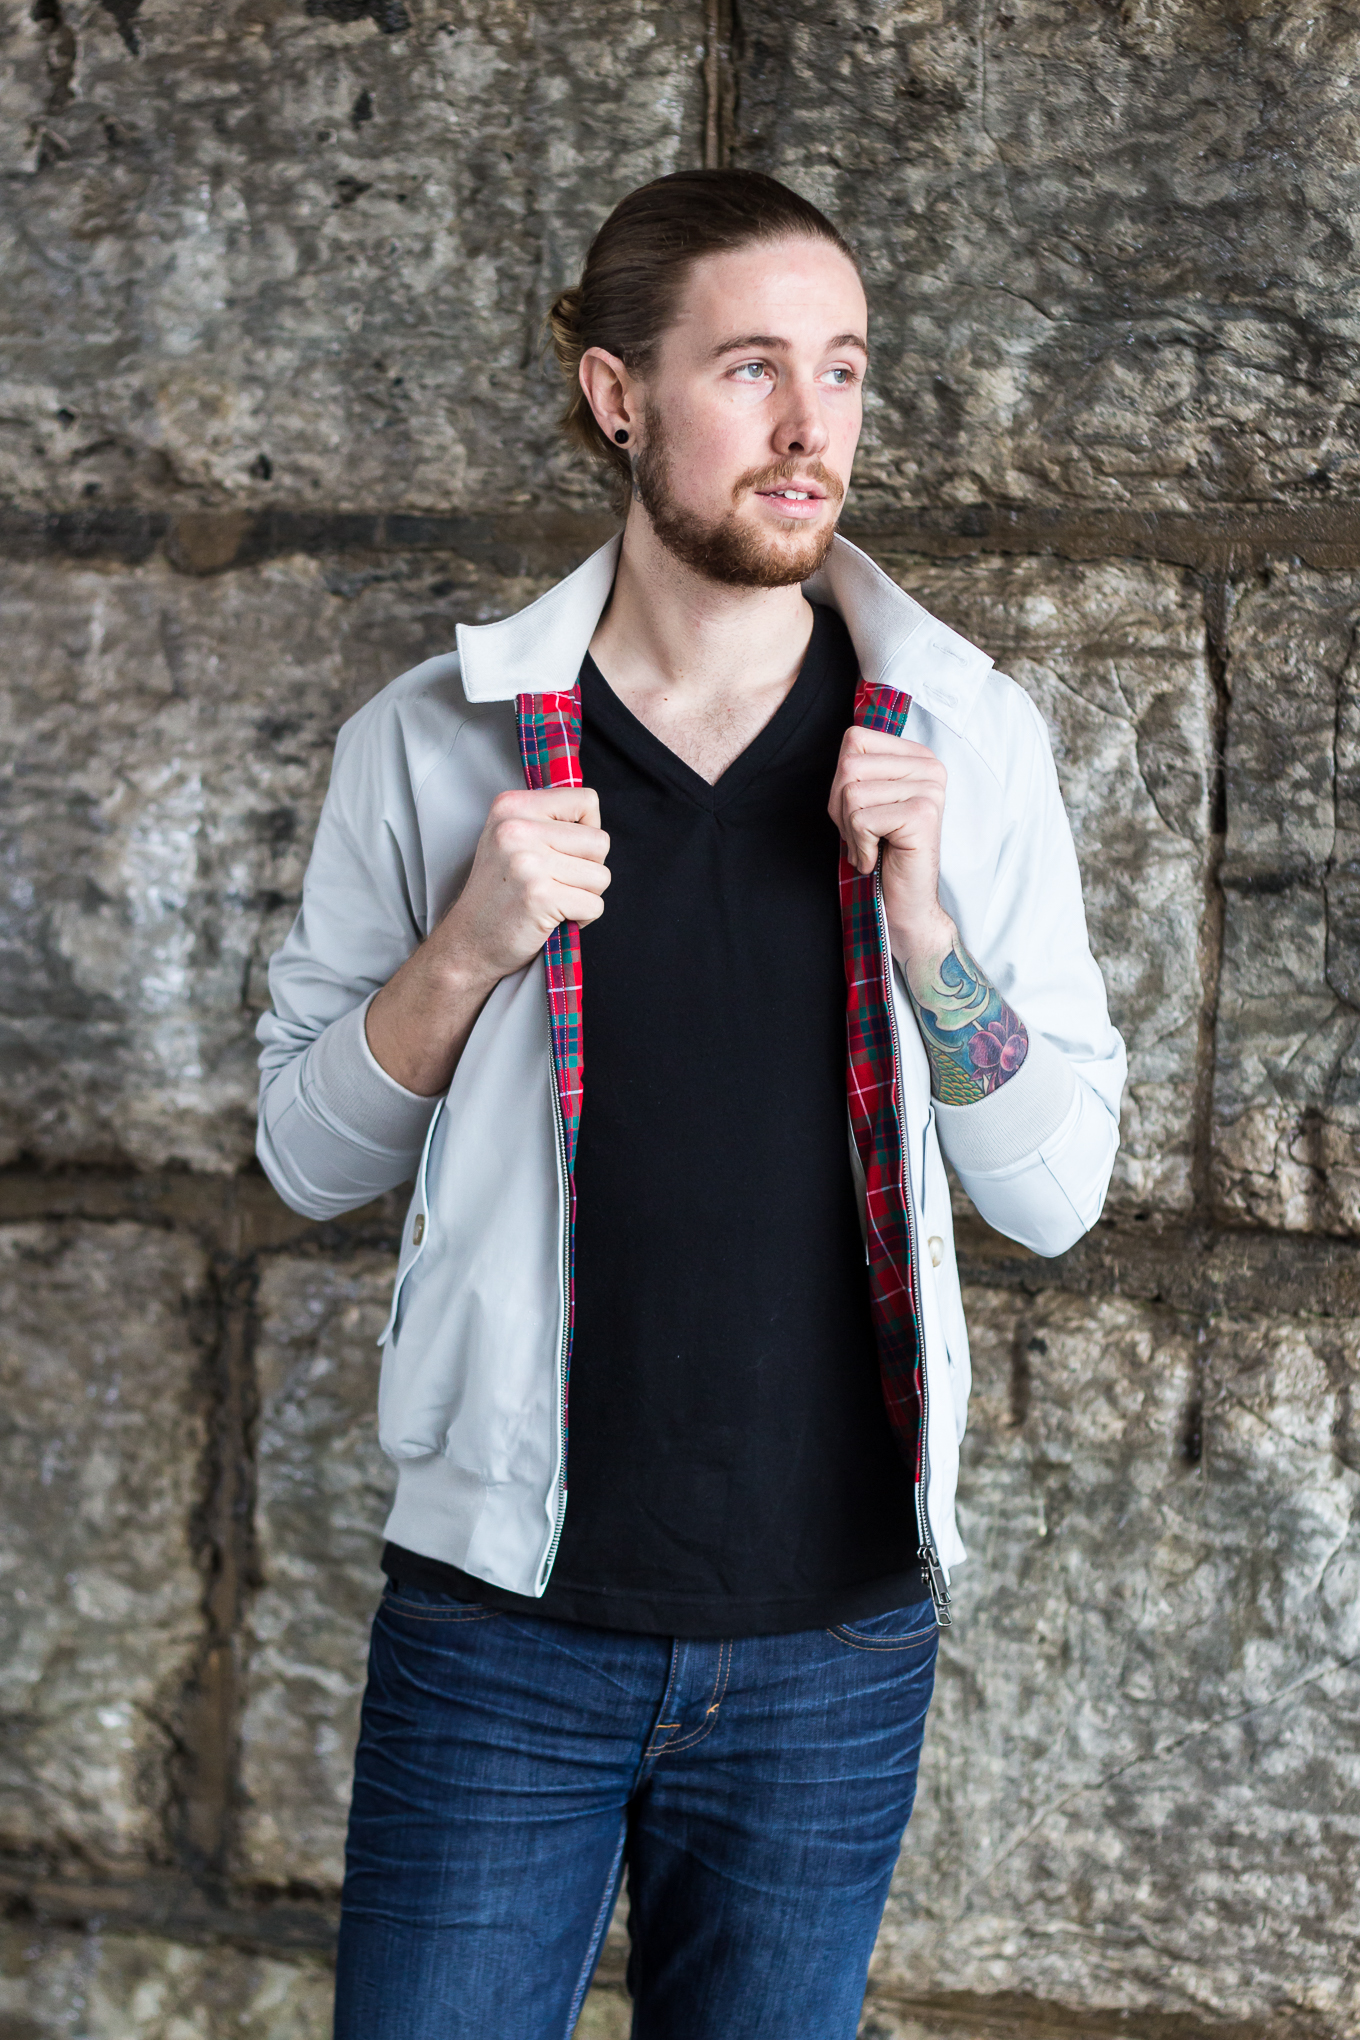 The Kentucky Gent, a mens' fashion and lifestyle blogger, in the classic Baracuta G9 Harrington Jacket.